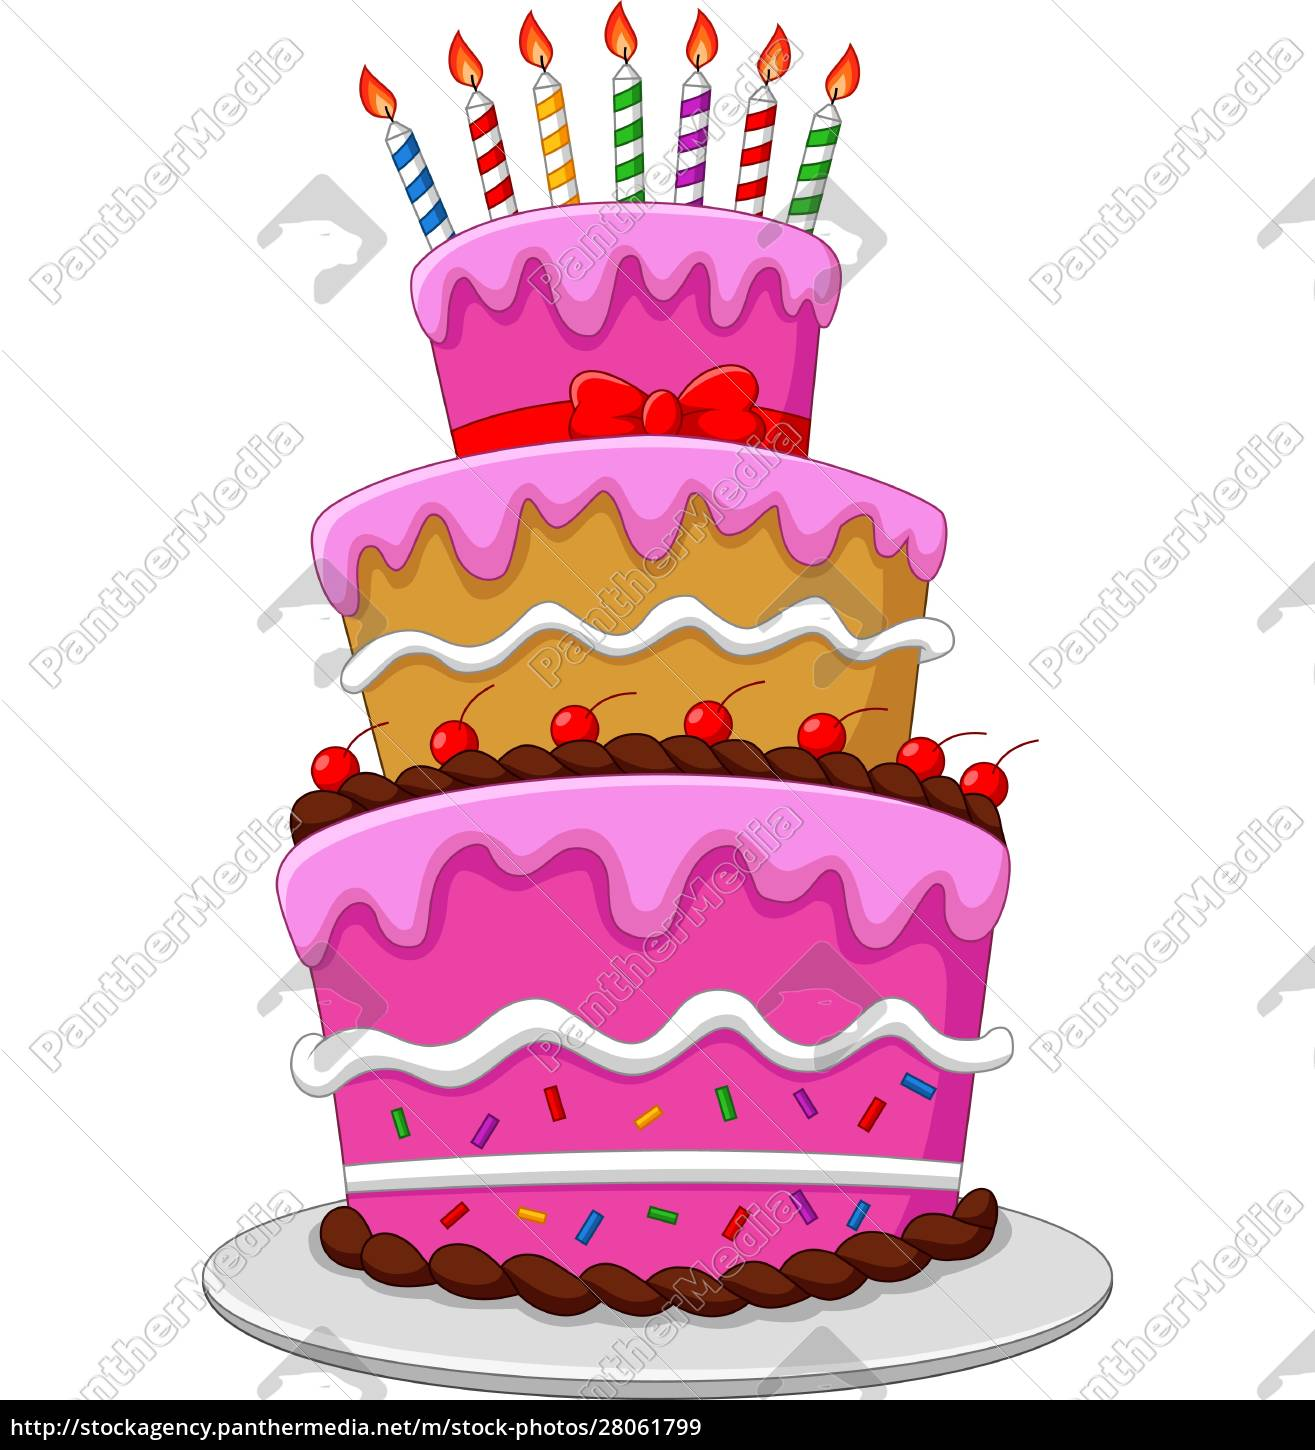 colorful, birthday, cake, with, candles, isolated - 28061799